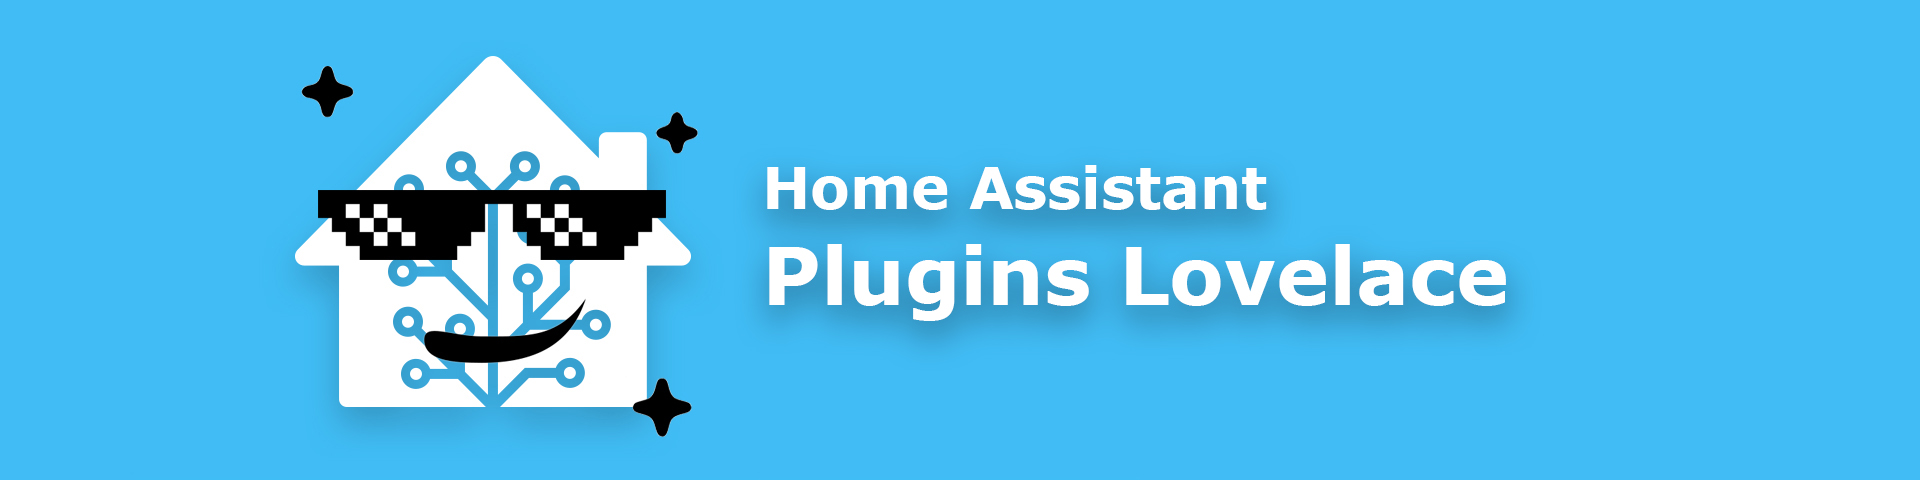 Instalando Plugins de Lovelace